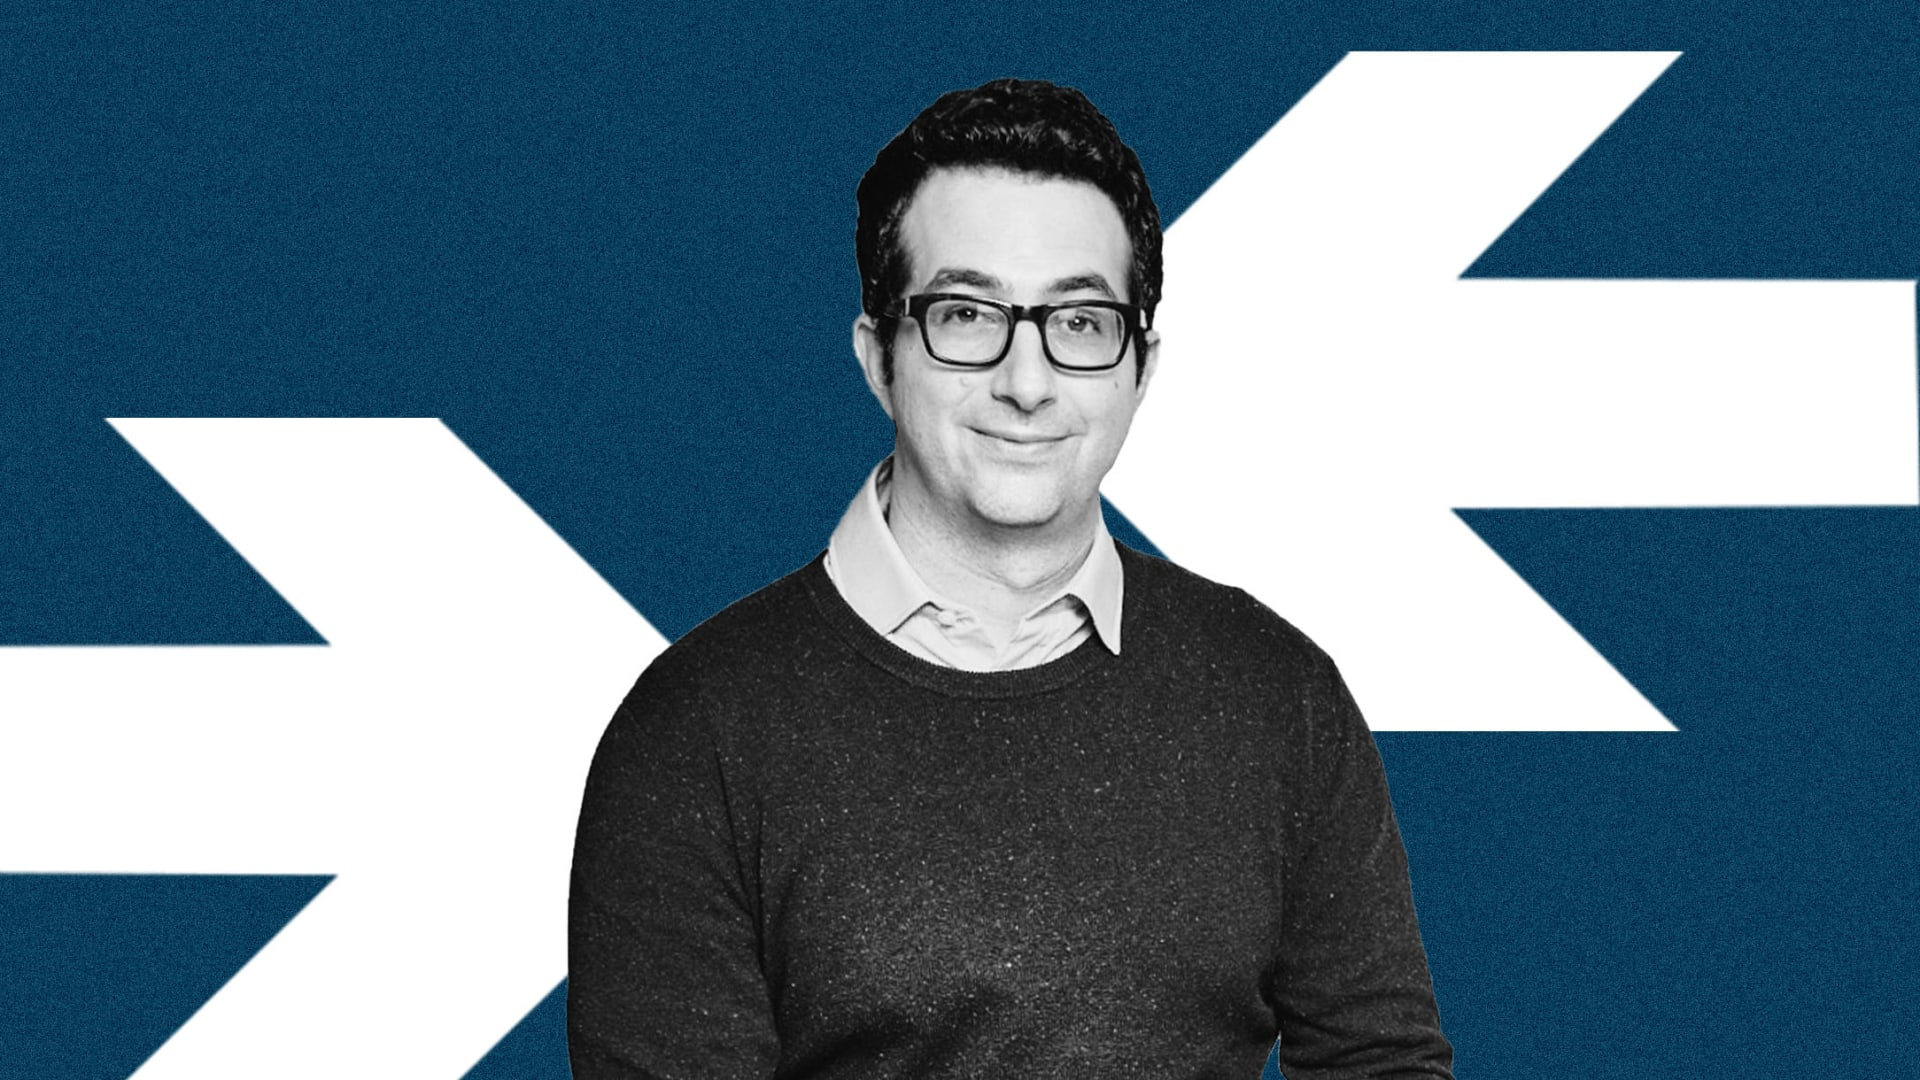 Sign Up Now: Meet Jeff Raider, Co-Founder of Harry's and Warby Parker, in an Exclusive Stream Event at 12 p.m. ET